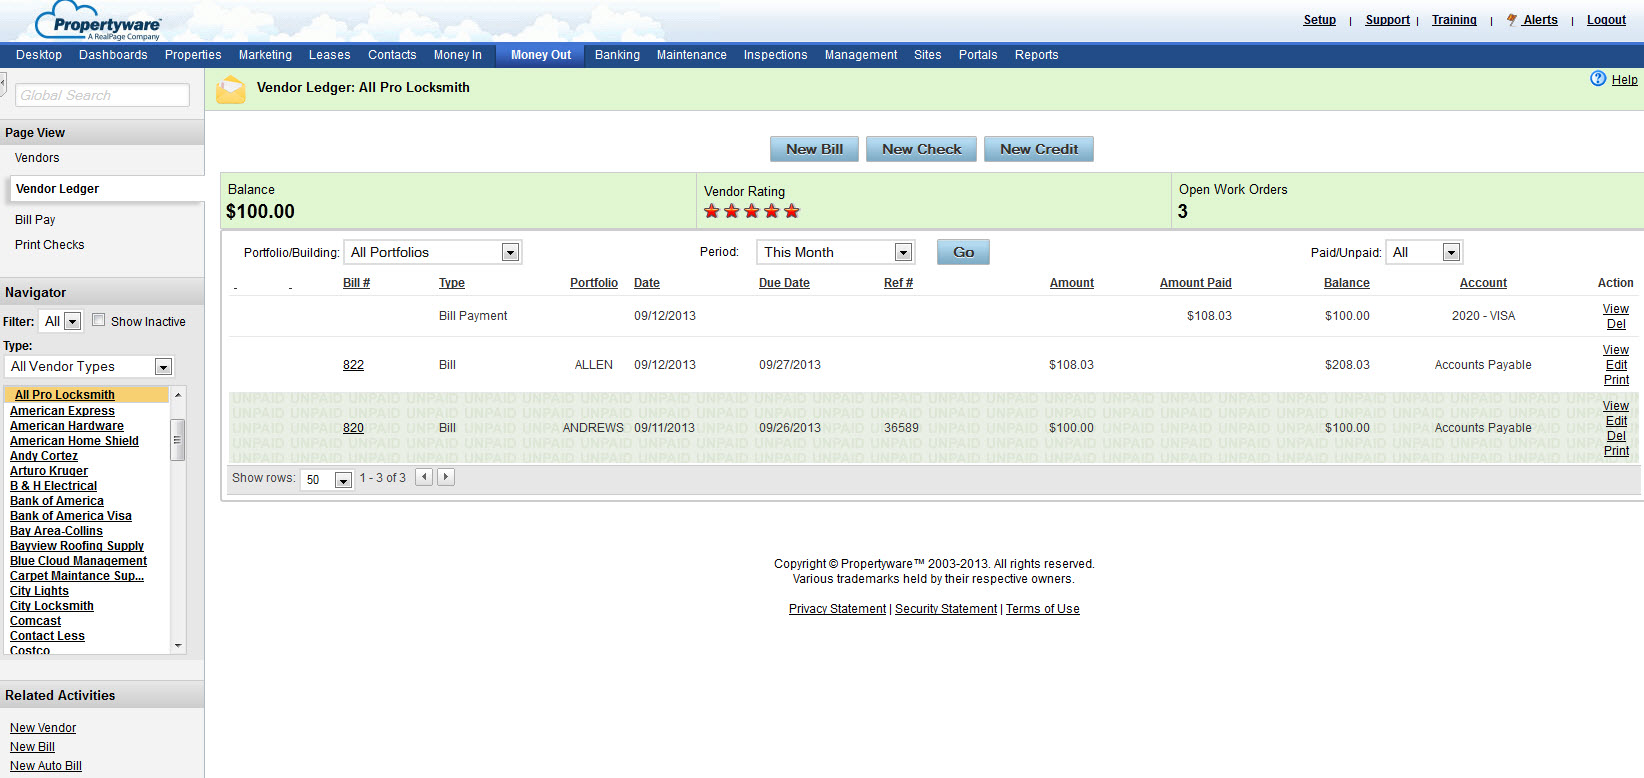 how to attach a work order to a bill in propertyware